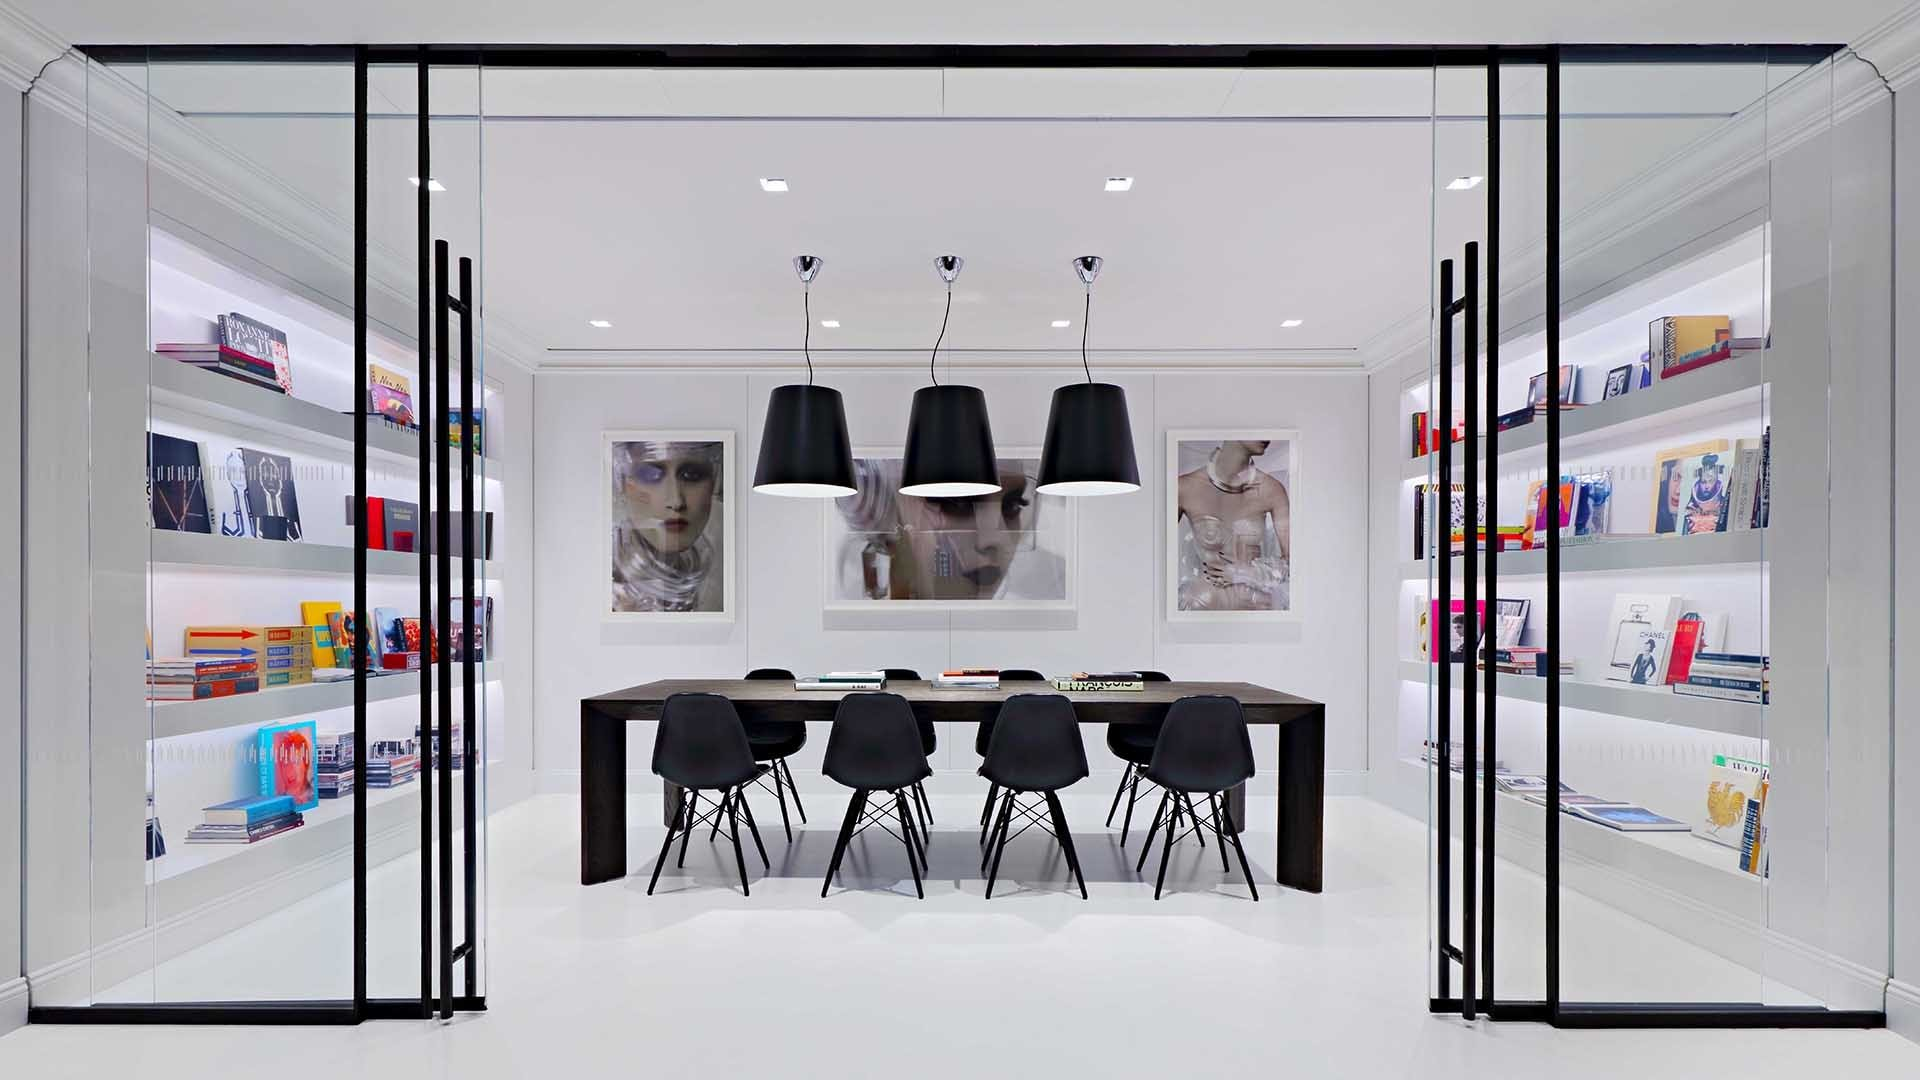 Murafelx EXPO NARS Conference Room